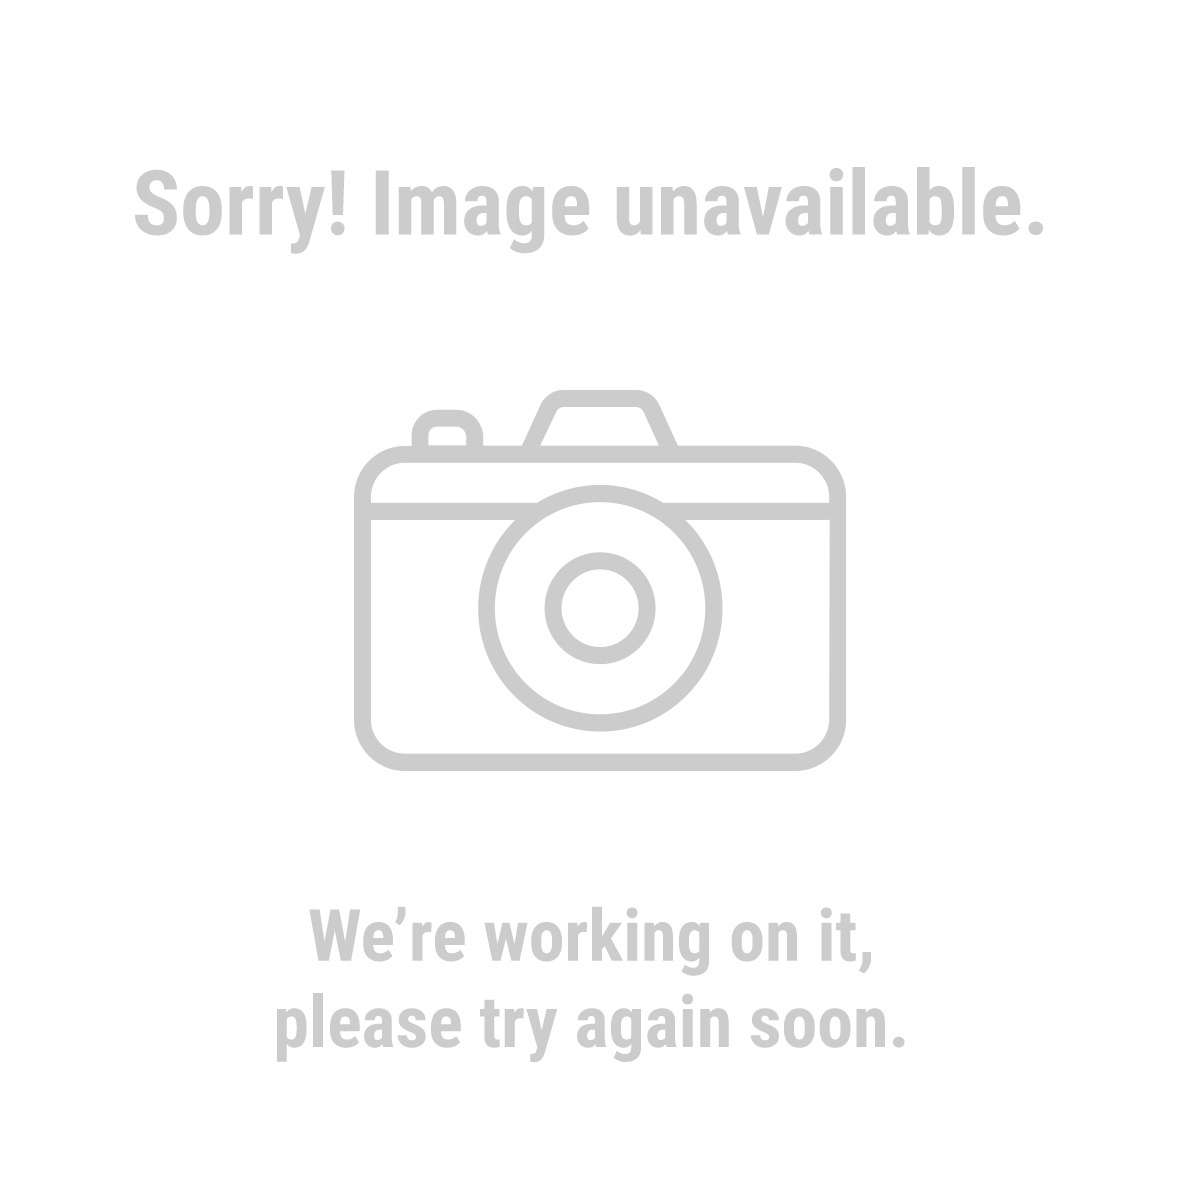 Maddox 63279 Ball Joint Service Kit for 2WD and 4WD Vehicles